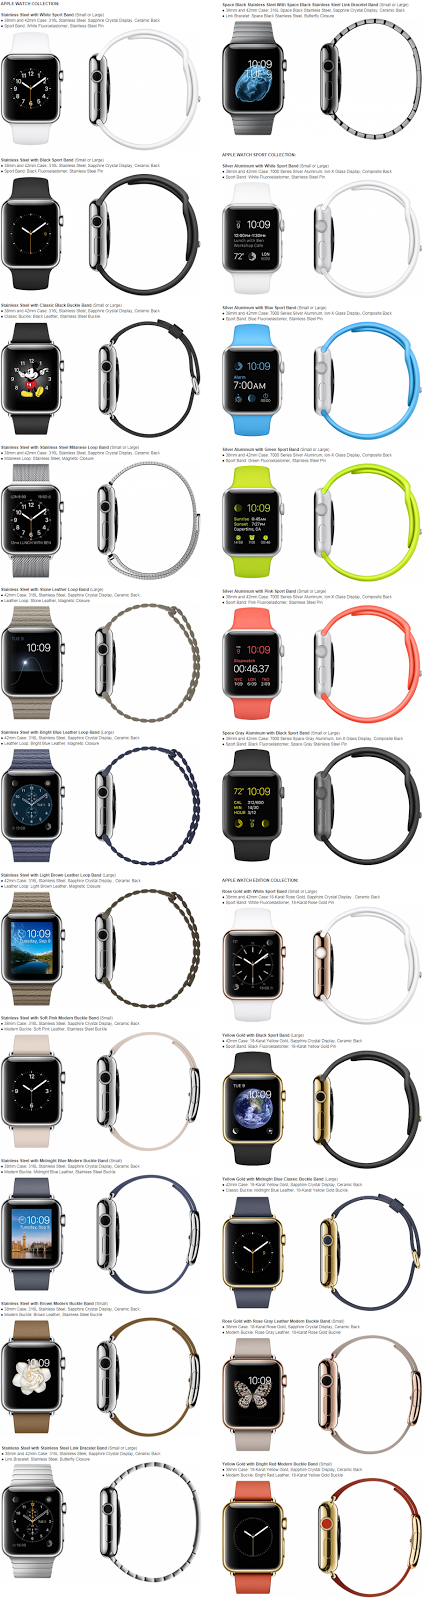 34 Different Apple Watch Model and Edition Types